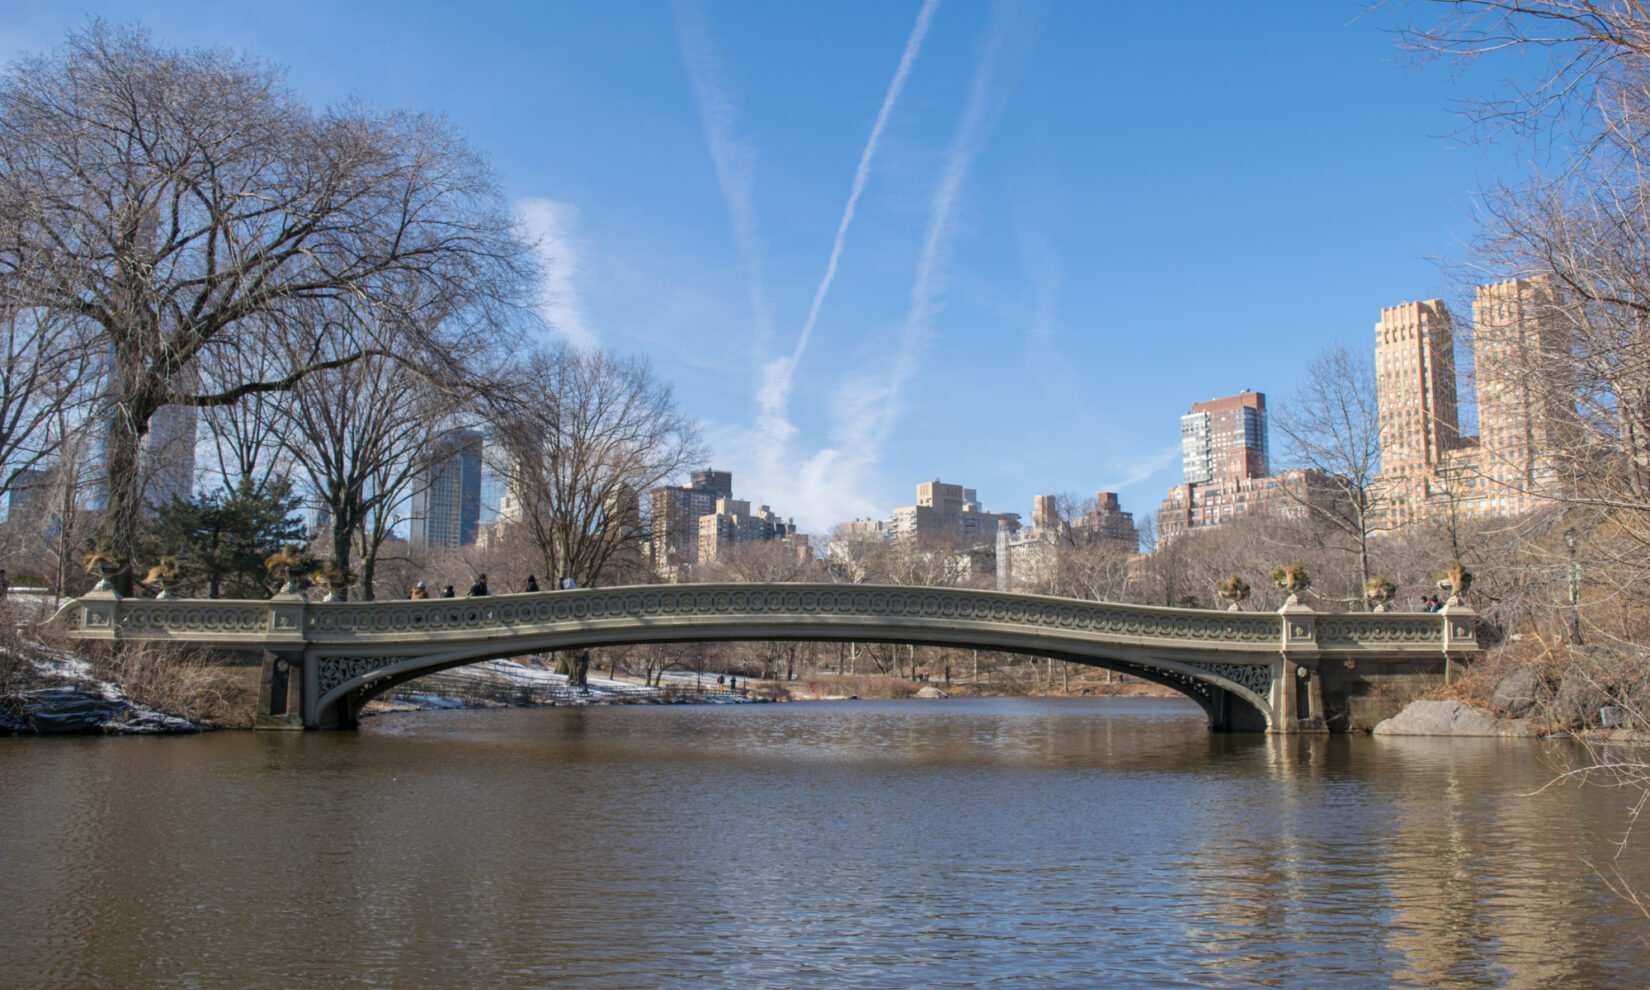 The bridge spans the Lake under a crisp, blue winter sky.